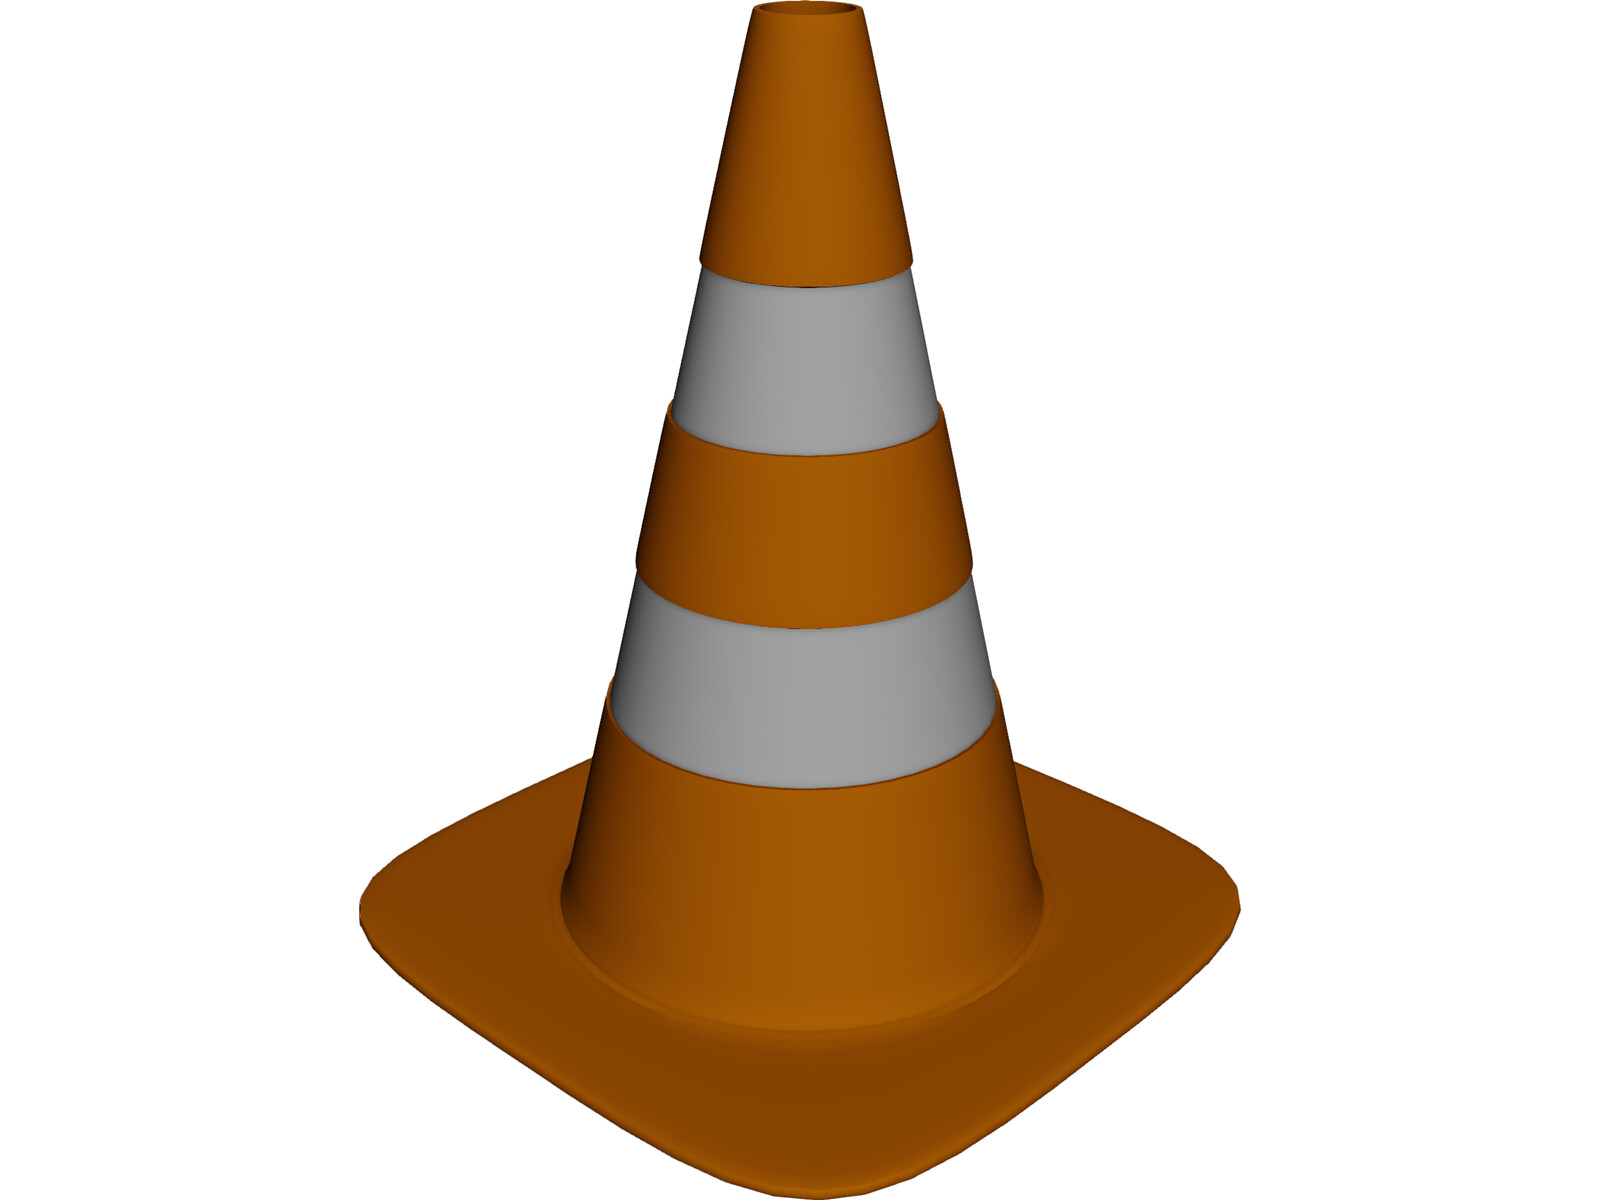 Traffic Cone Gallery Caution Cones Free Clipart Animated